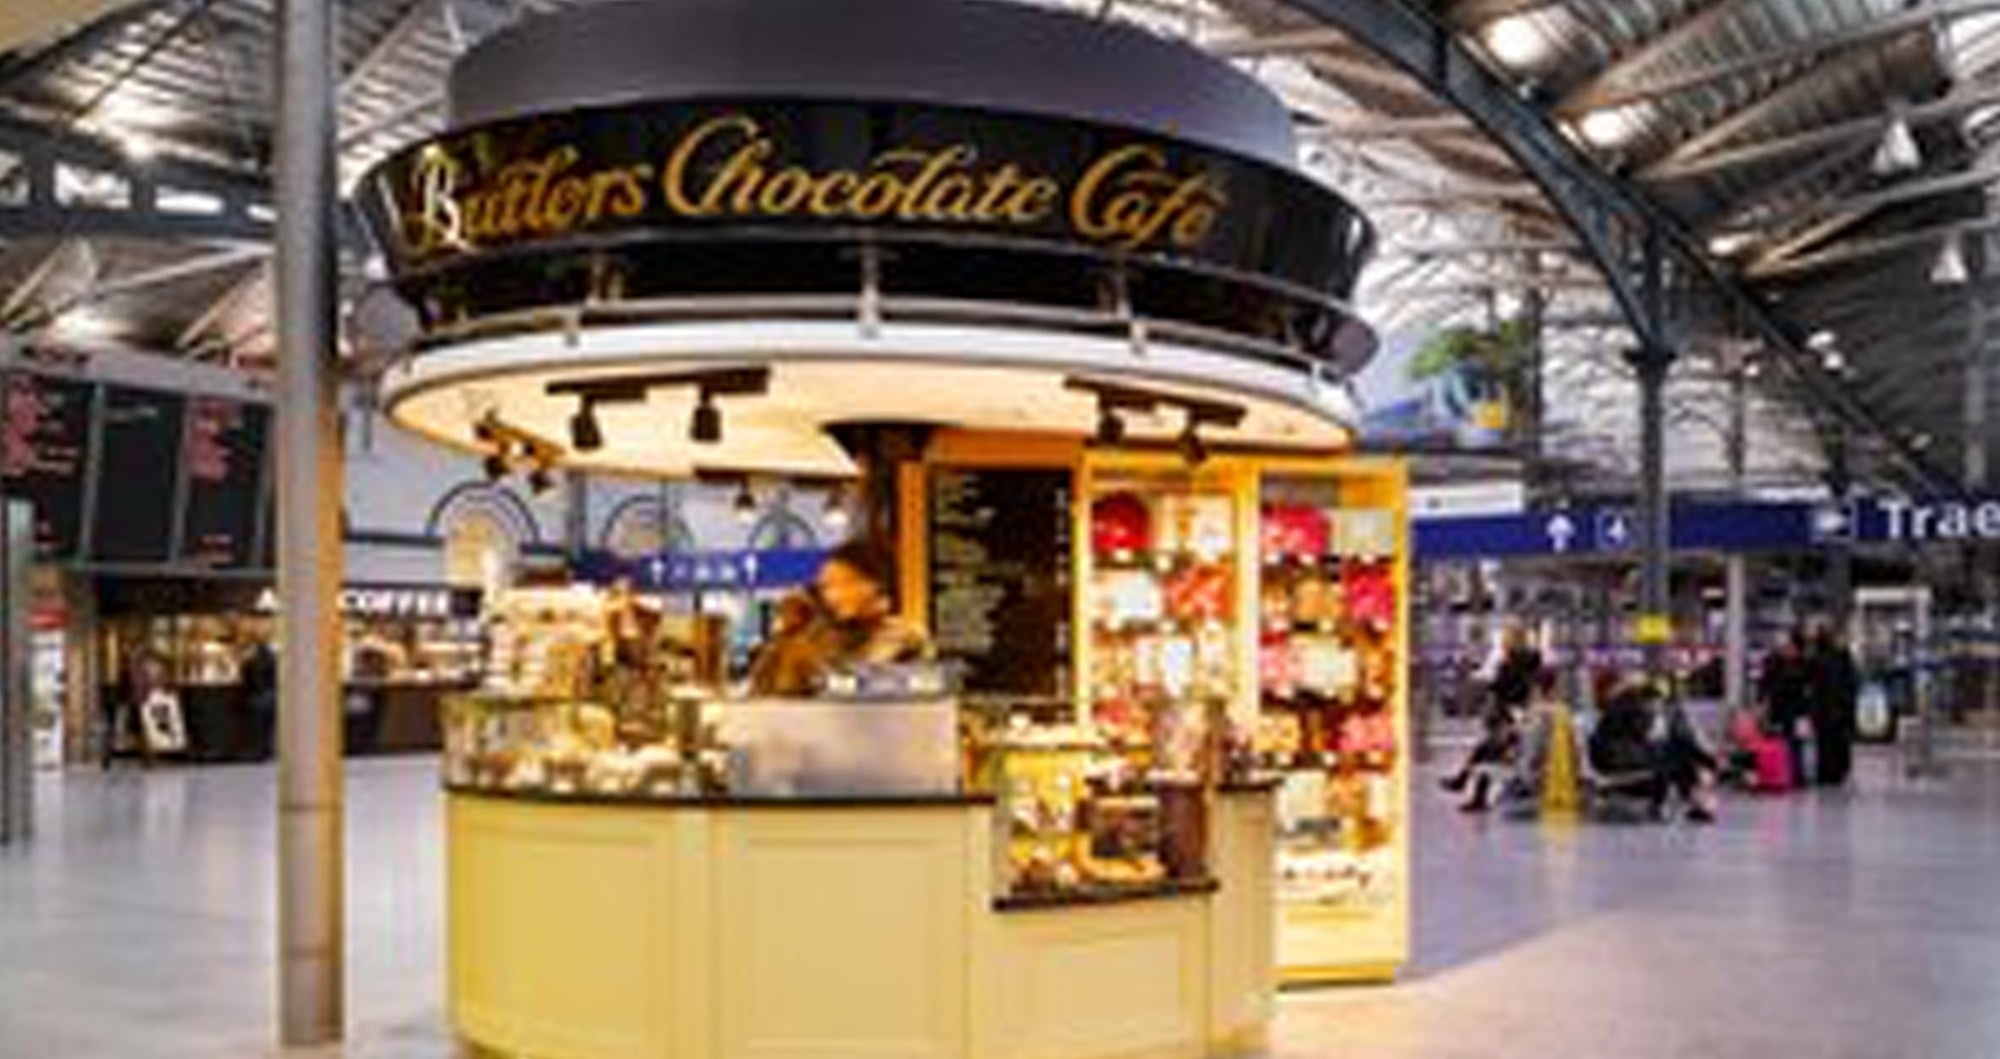 Butlers Chocolates Heuston Station, Dublin 8